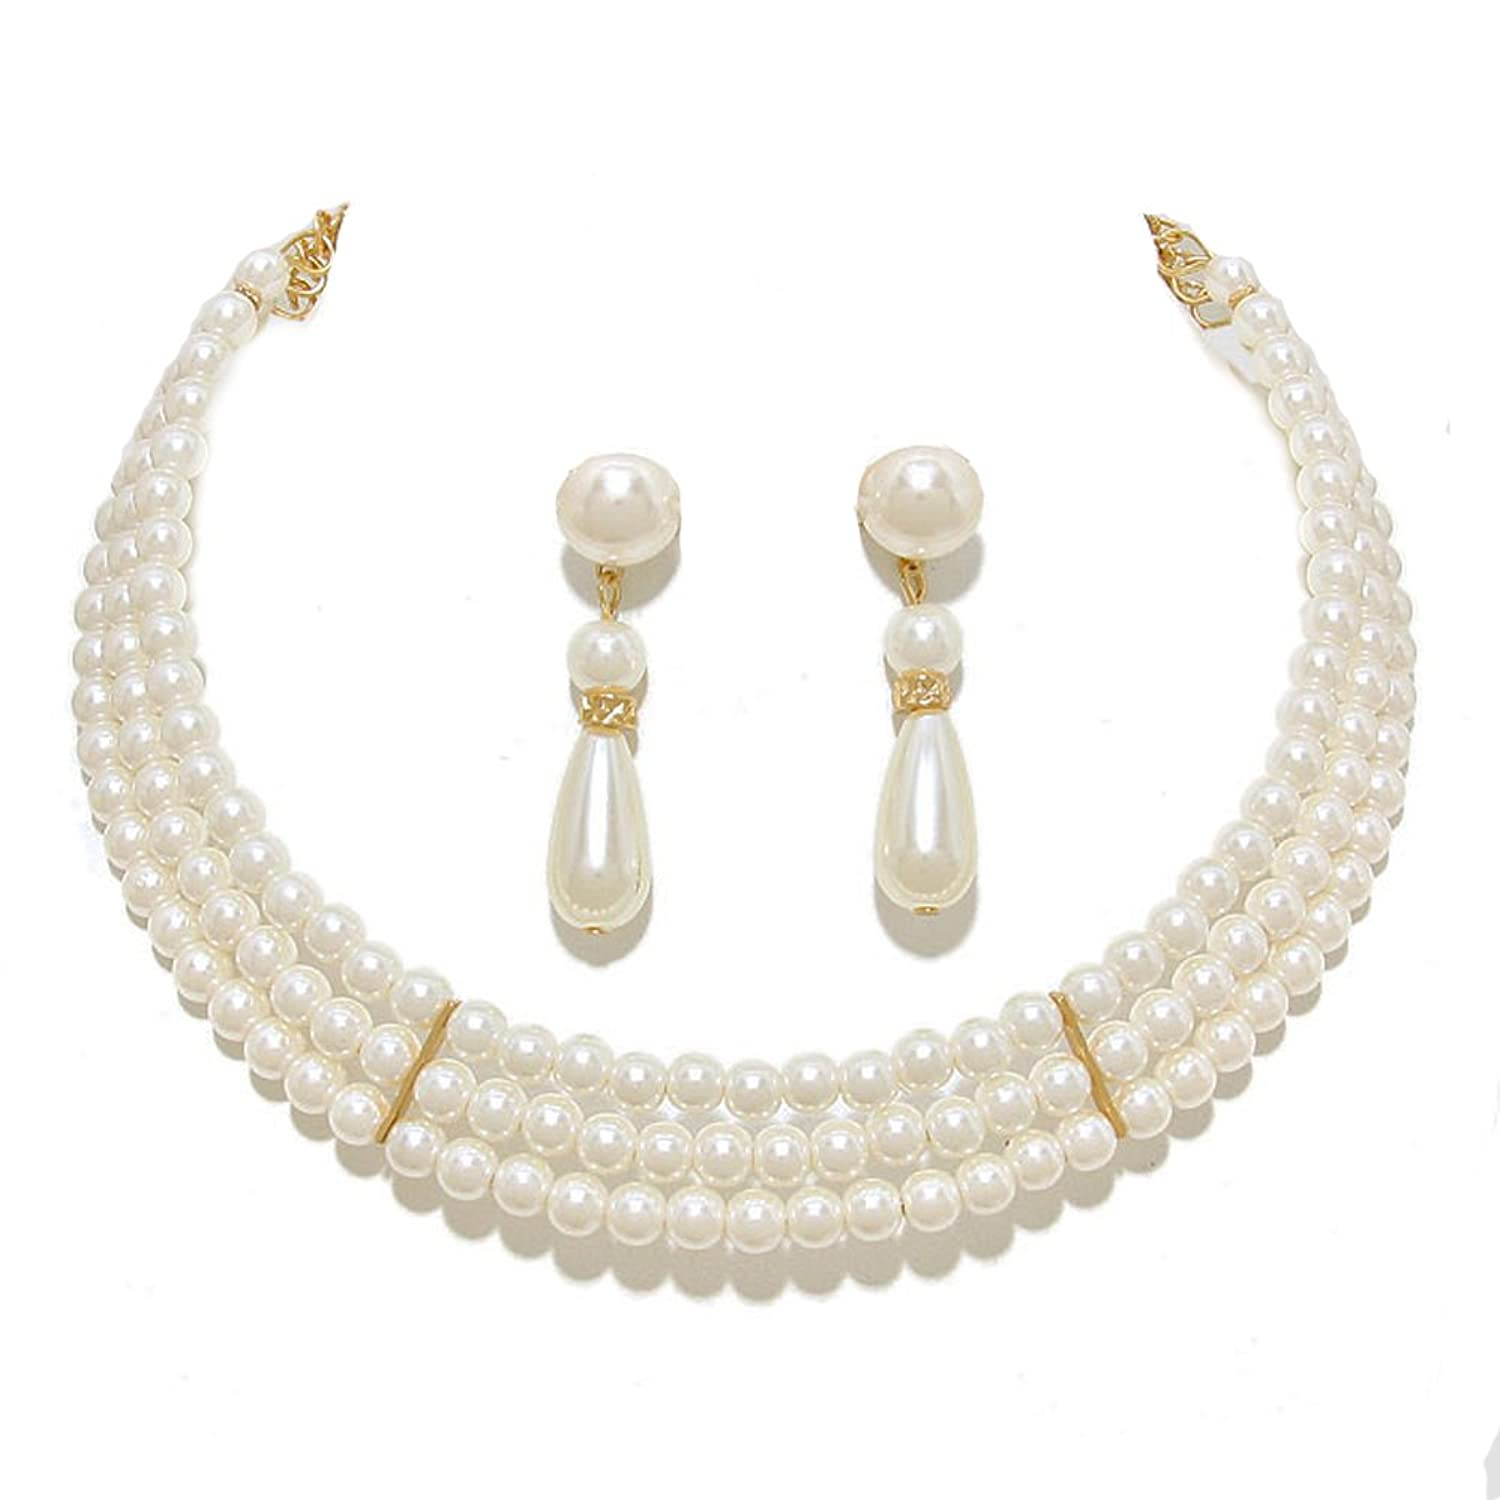 1950 Style Clothing- A Shopping Guide 3 Rows Elegant Simulated Pearl Choker Necklace Pierced Earring 2 Set $9.99 AT vintagedancer.com